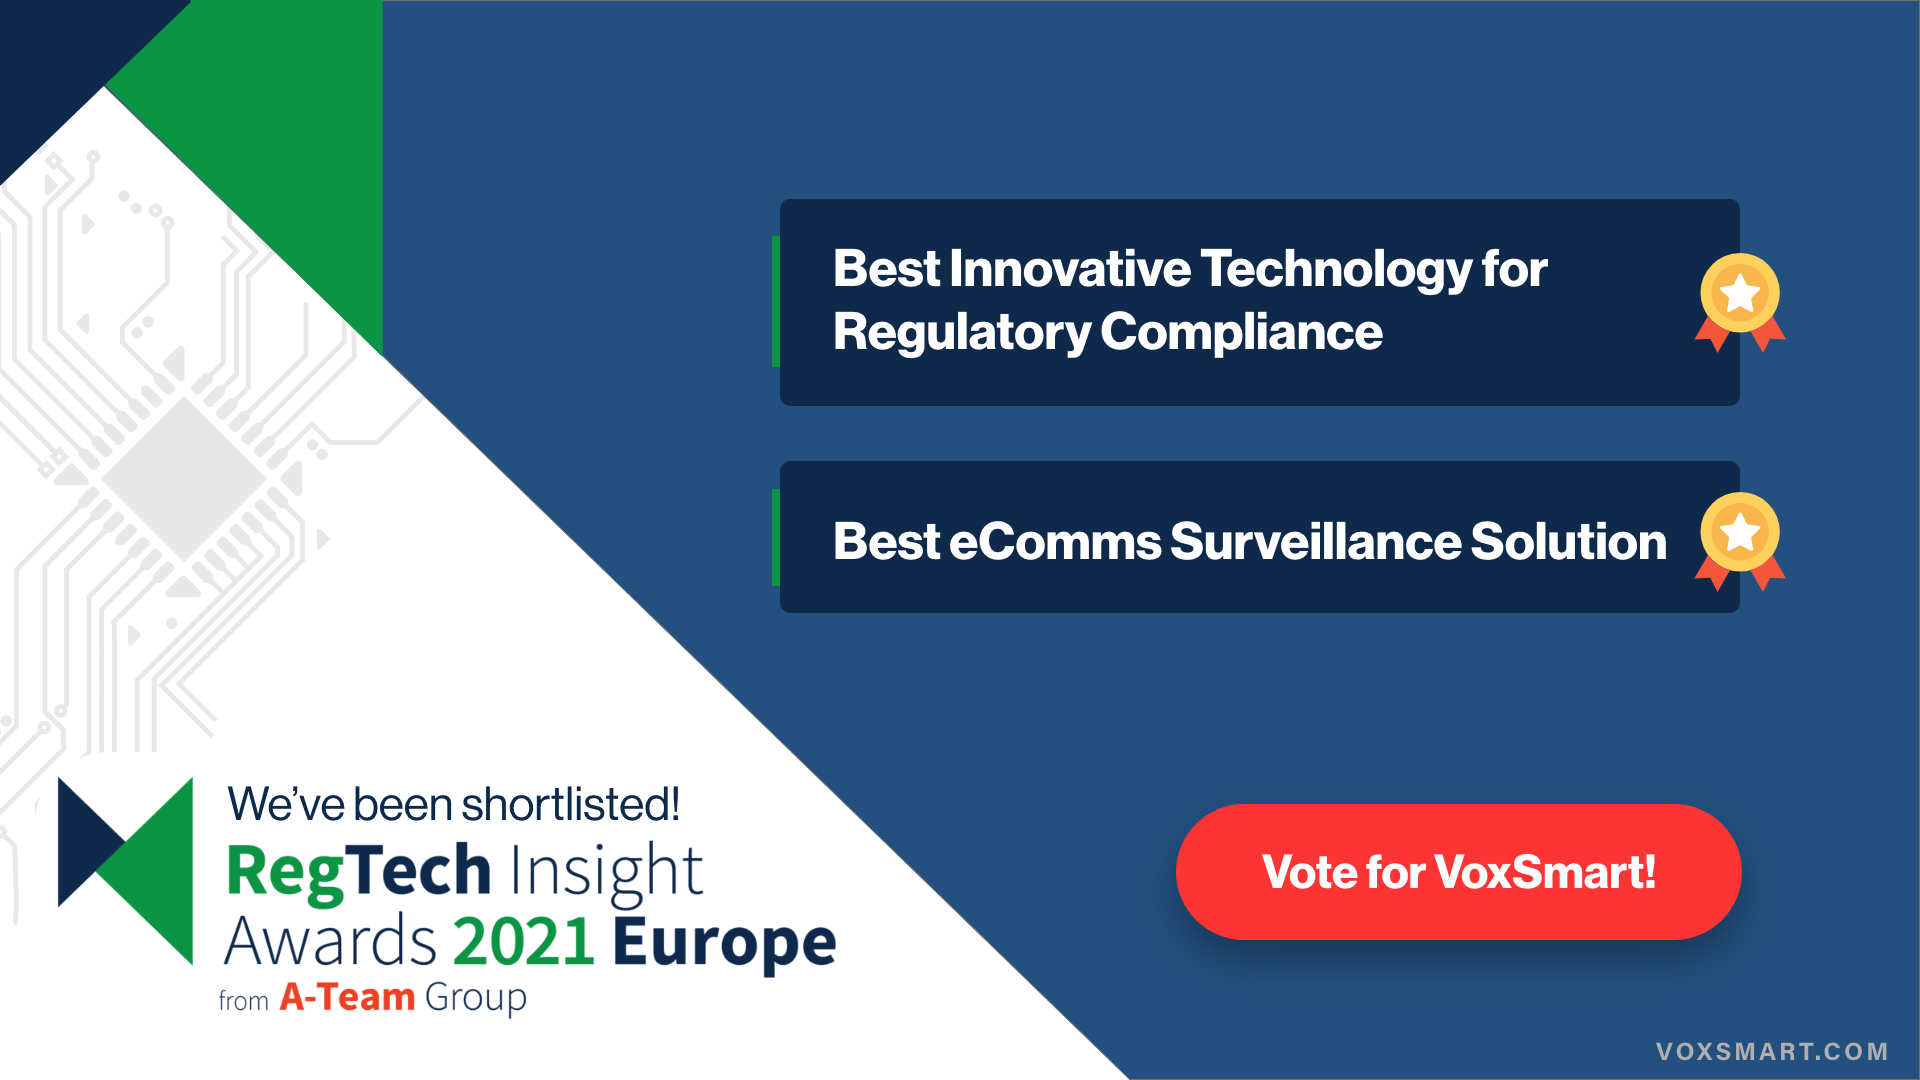 It's awards season and VoxSmart makes the shortlist!